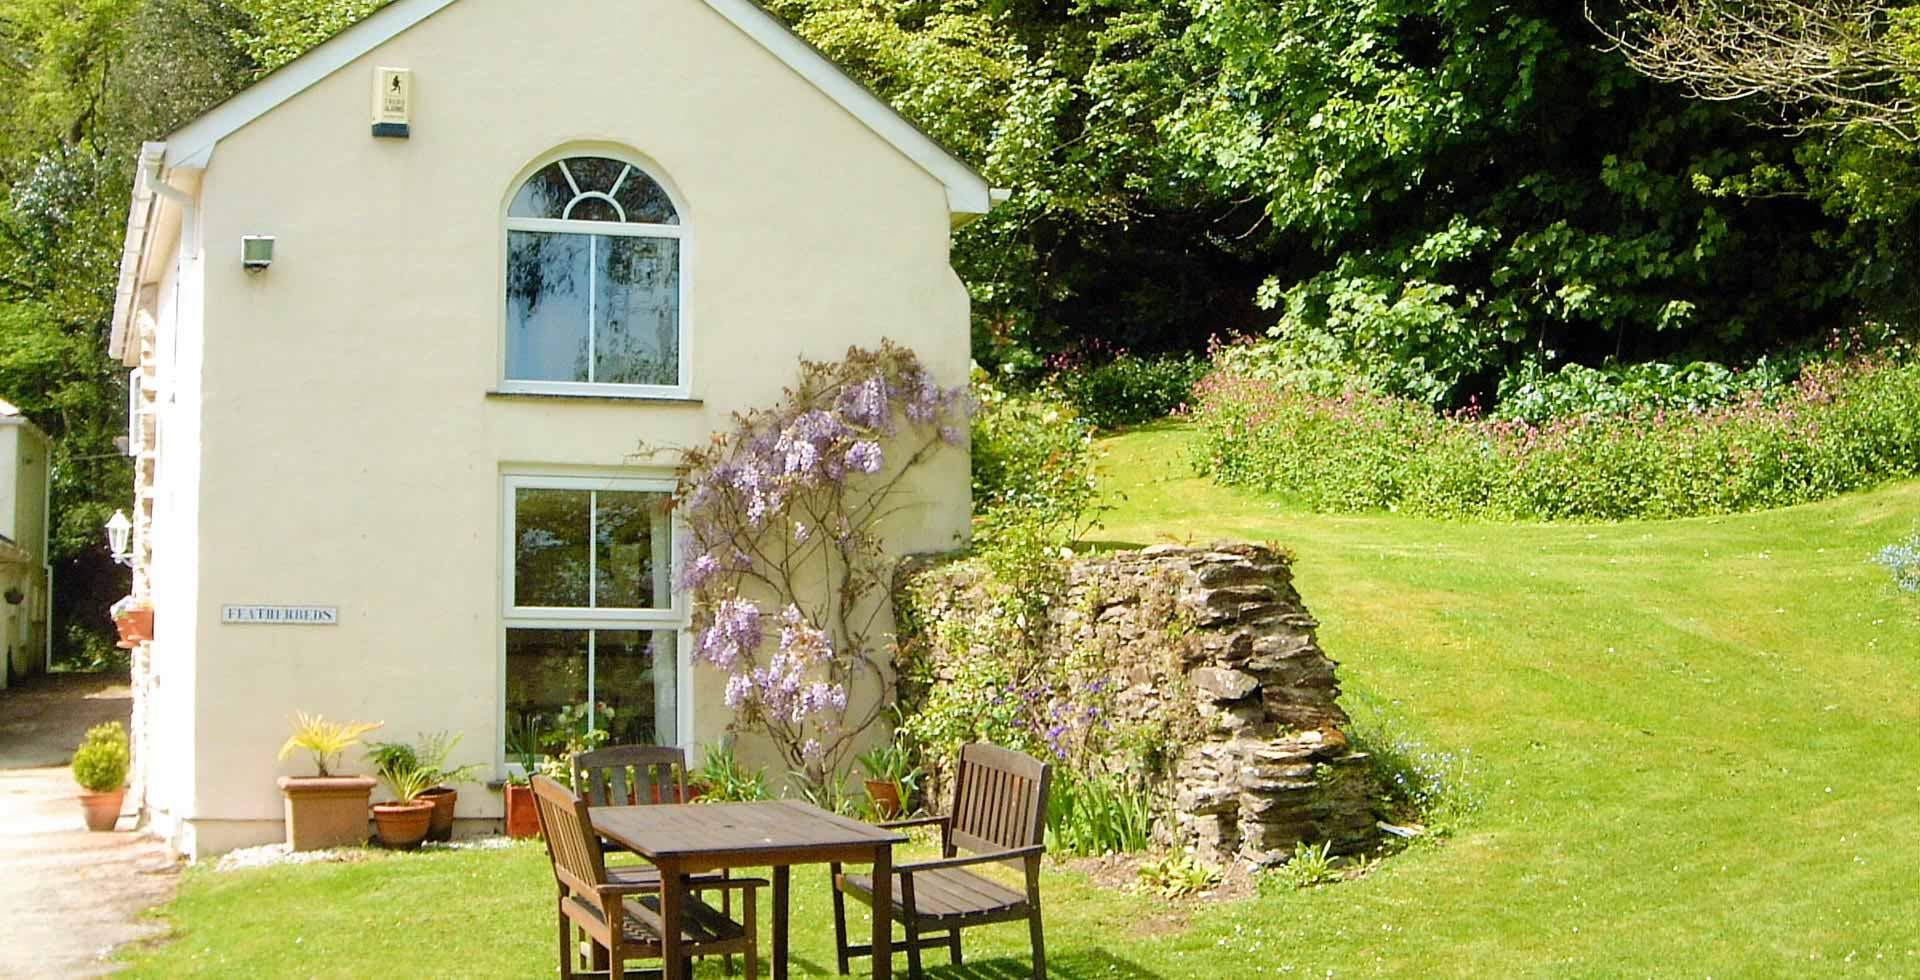 The collectors olivey place mylor bridge nr falmouth cornwall uk - Featherbeds Cottage